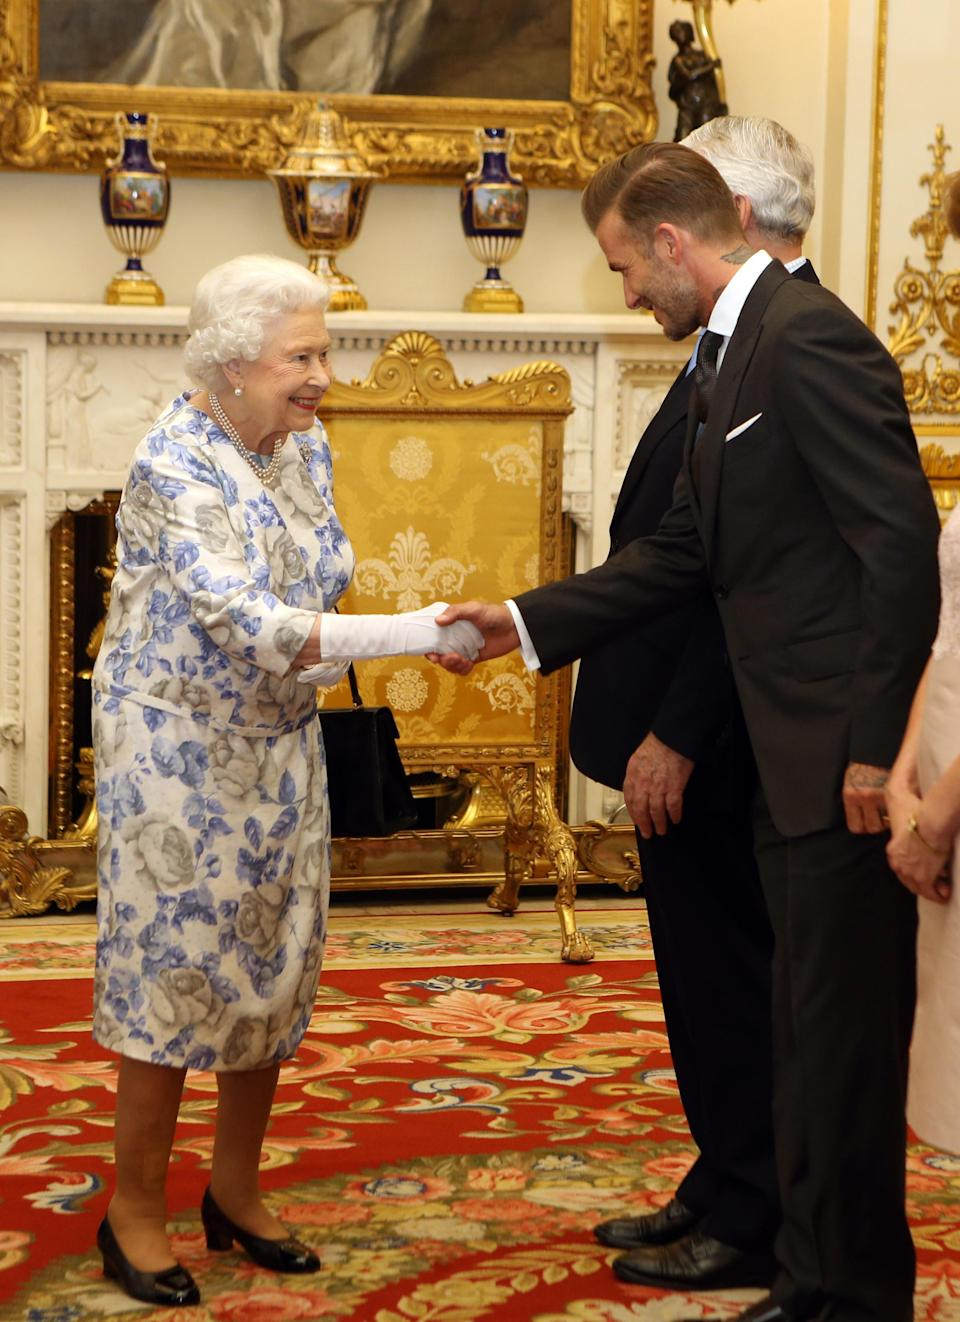 """<p>He may be one of the most famous people in the world but even David Beckham <a rel=""""nofollow noopener"""" href=""""https://www.express.co.uk/celebrity-news/682898/David-Beckham-dapper-the-Queen-Buckingham-Palace-Young-Leaders-Awards"""" target=""""_blank"""" data-ylk=""""slk:had"""" class=""""link rapid-noclick-resp"""">had</a> """"goosebumps"""" when he met the Queen. But he certainly dressed to impress in a dapper suit which, by the looks of Her Majesty's grin, she definitely approved of. <em>[Photo: Getty]</em> </p>"""